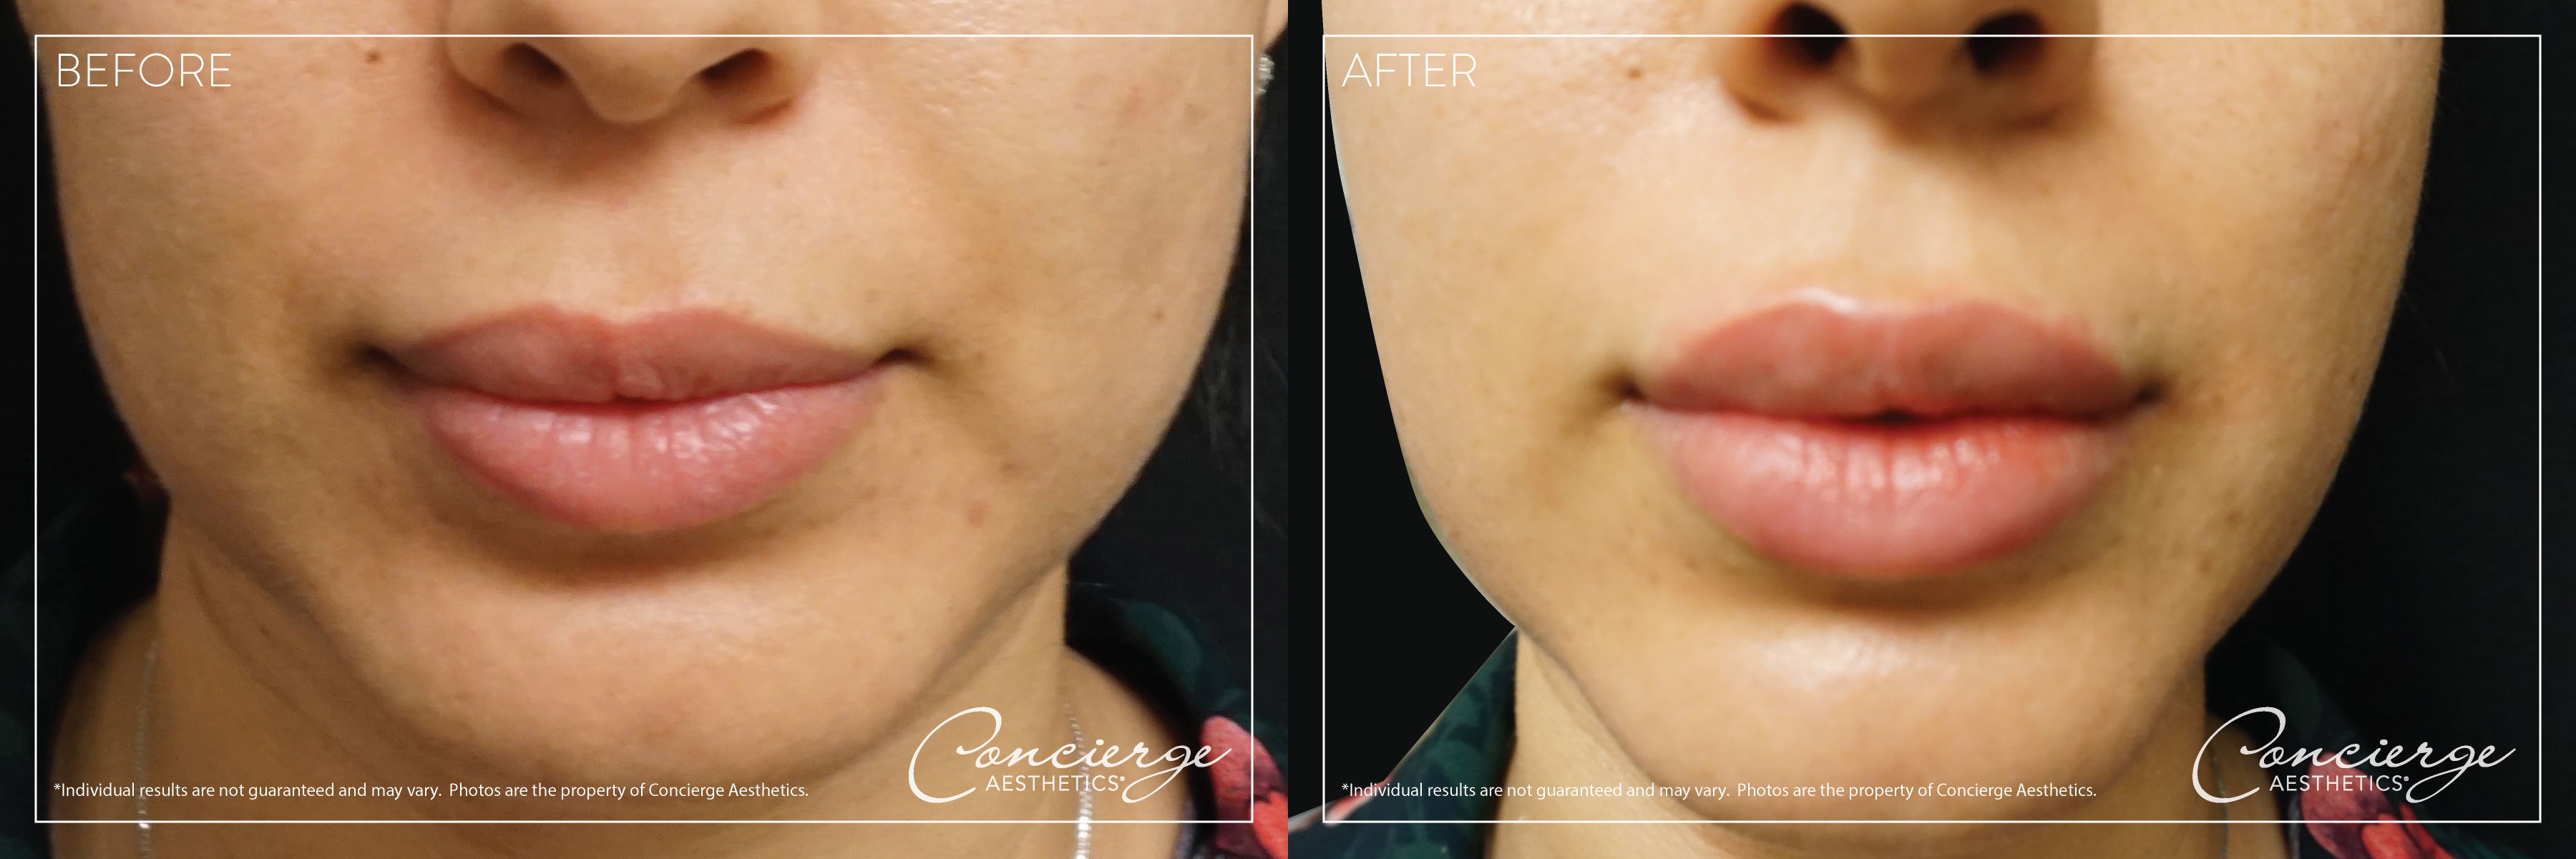 Concierge Aesthetics Before and After Juvederm Volbella